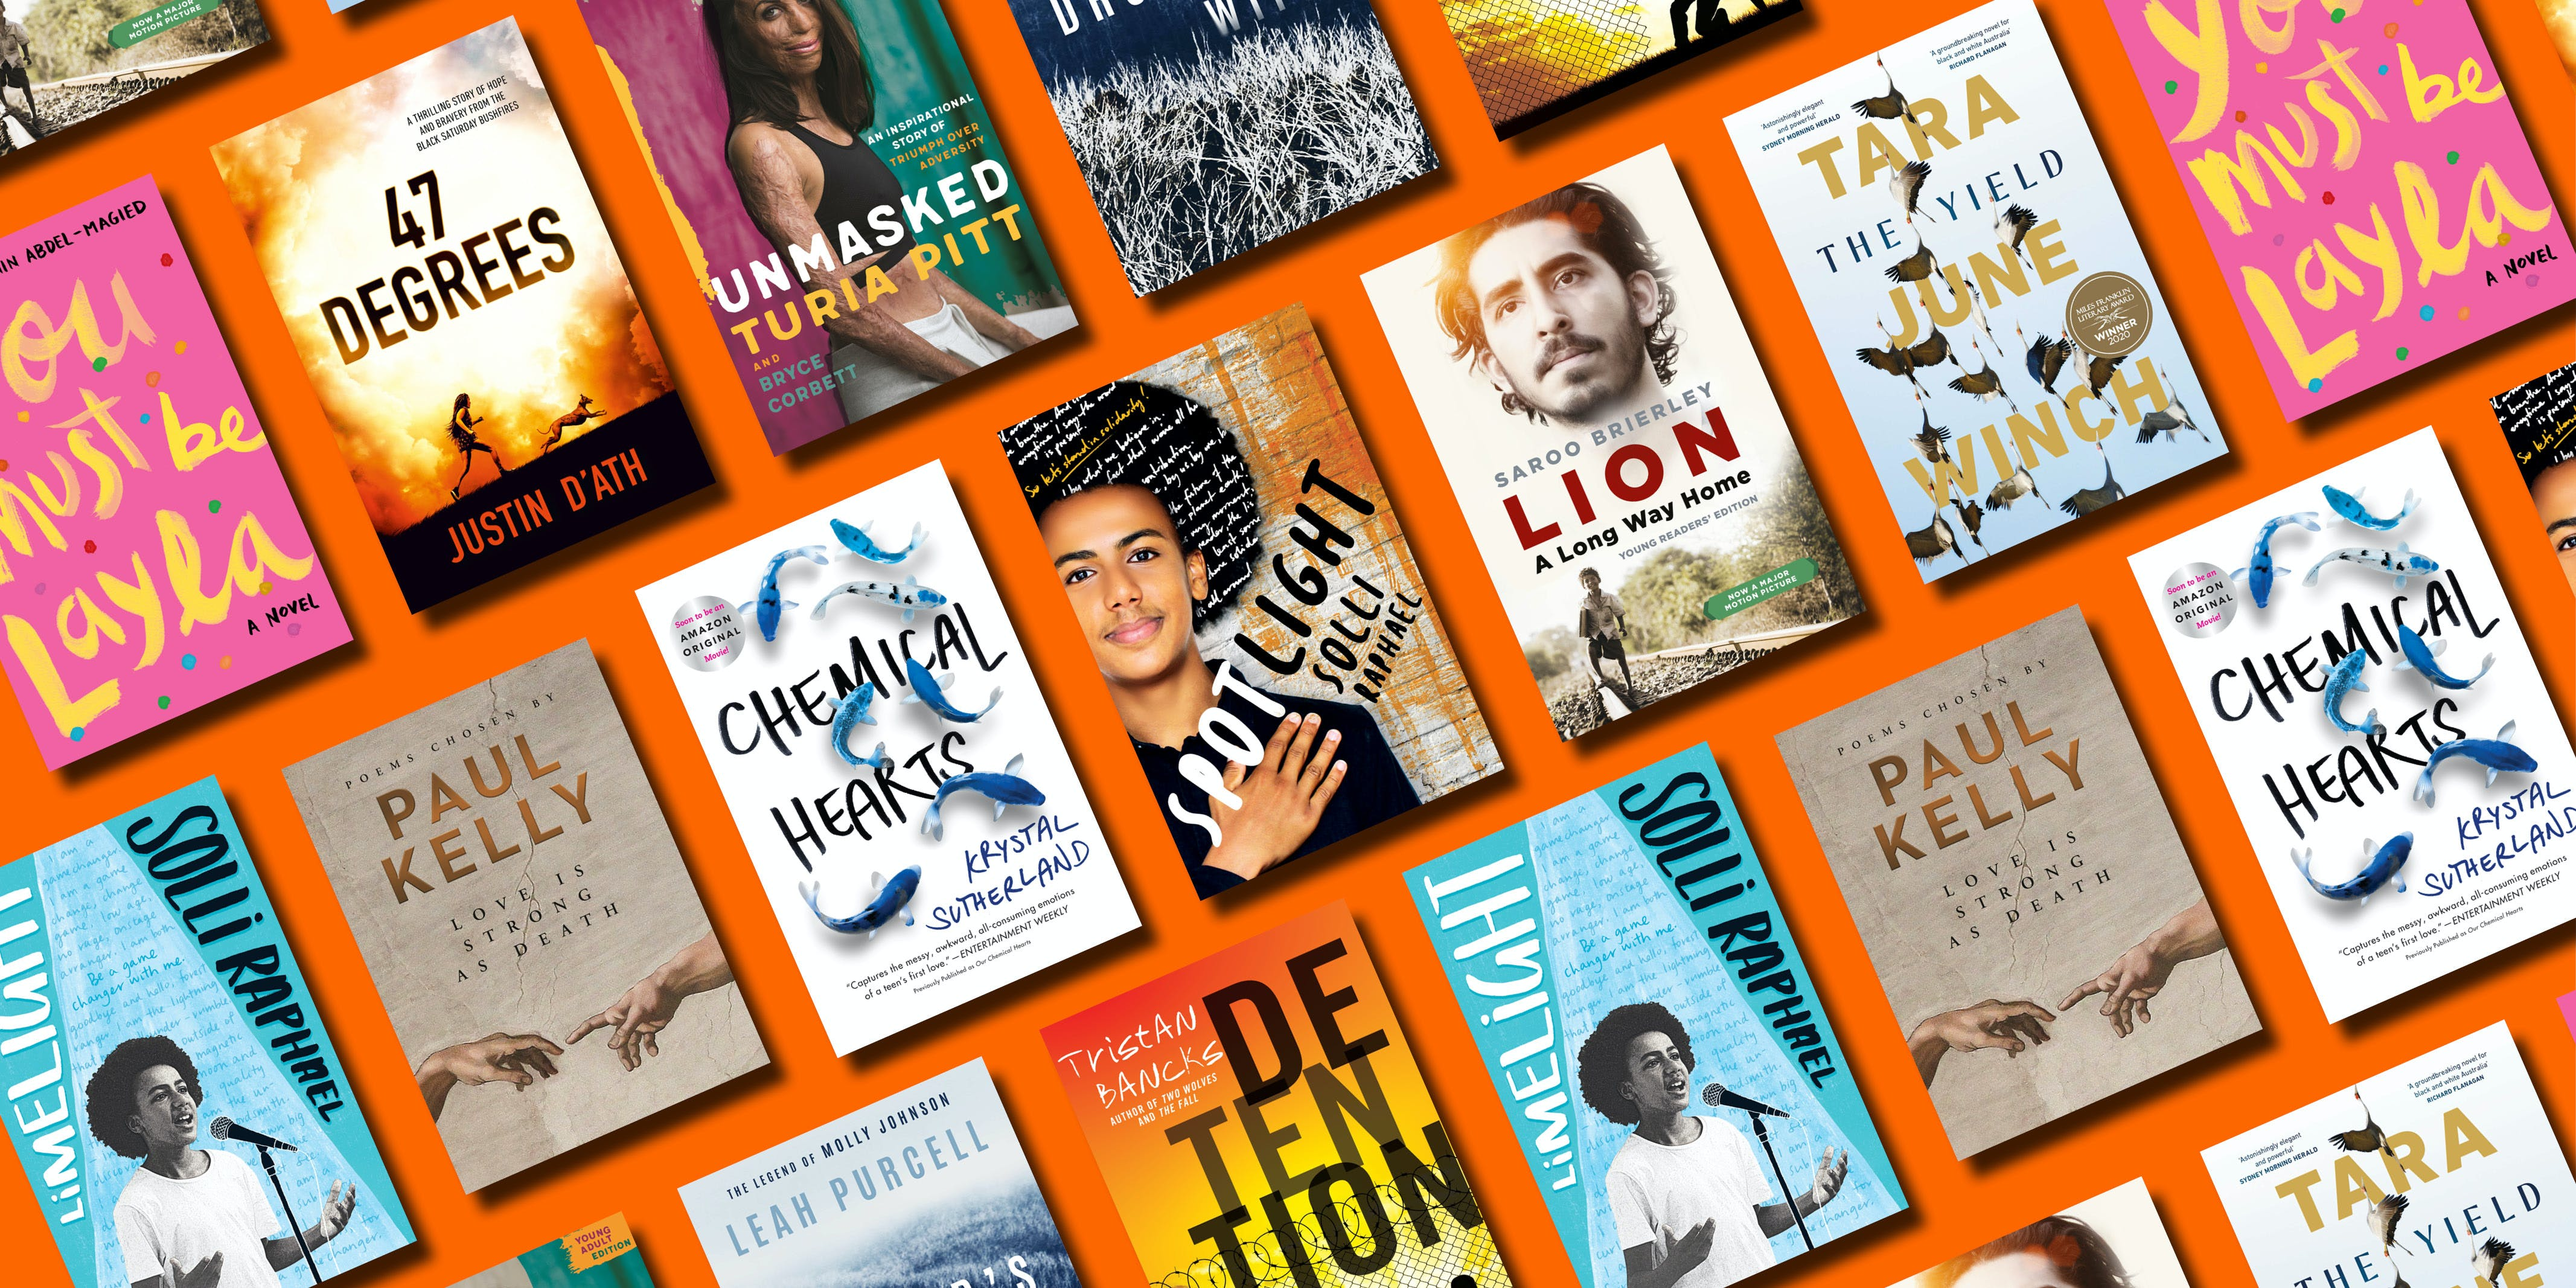 The best new books for high school students